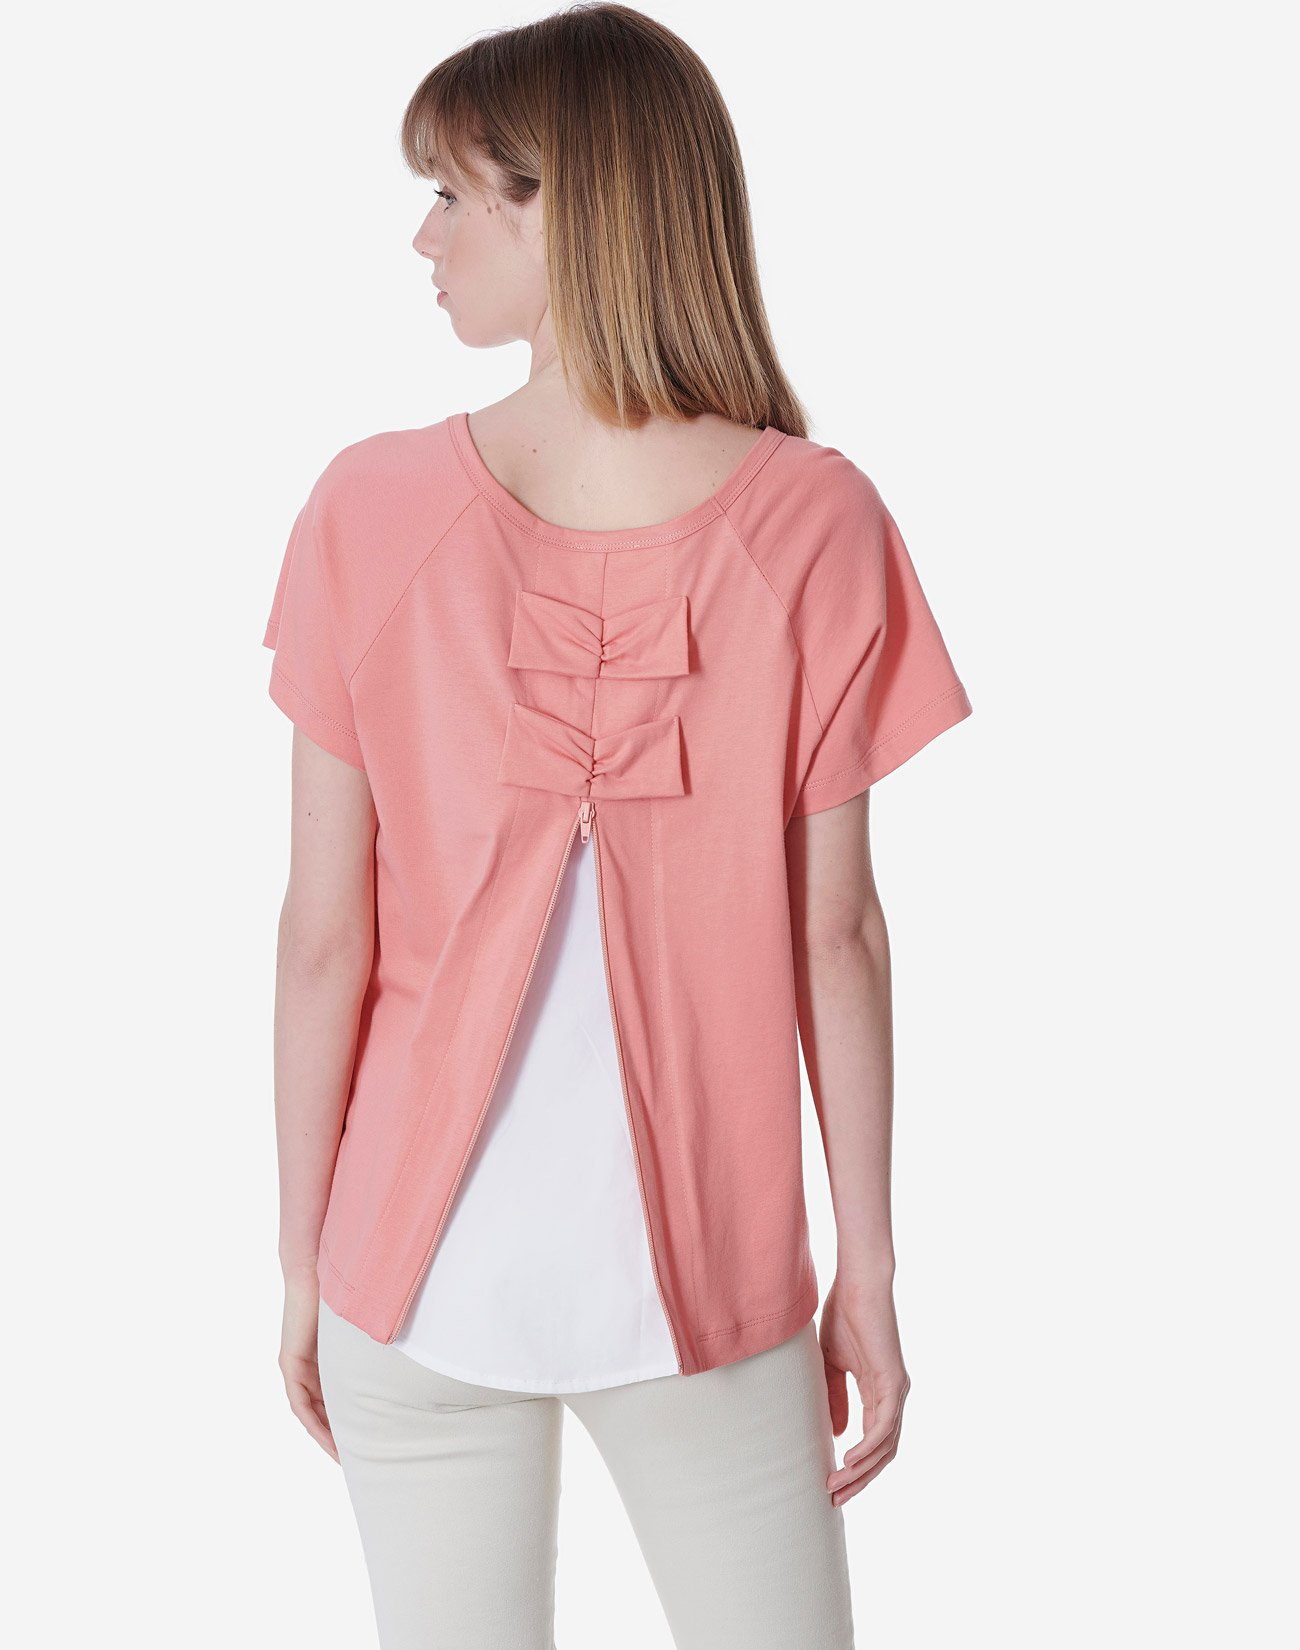 Top in contrast with bows